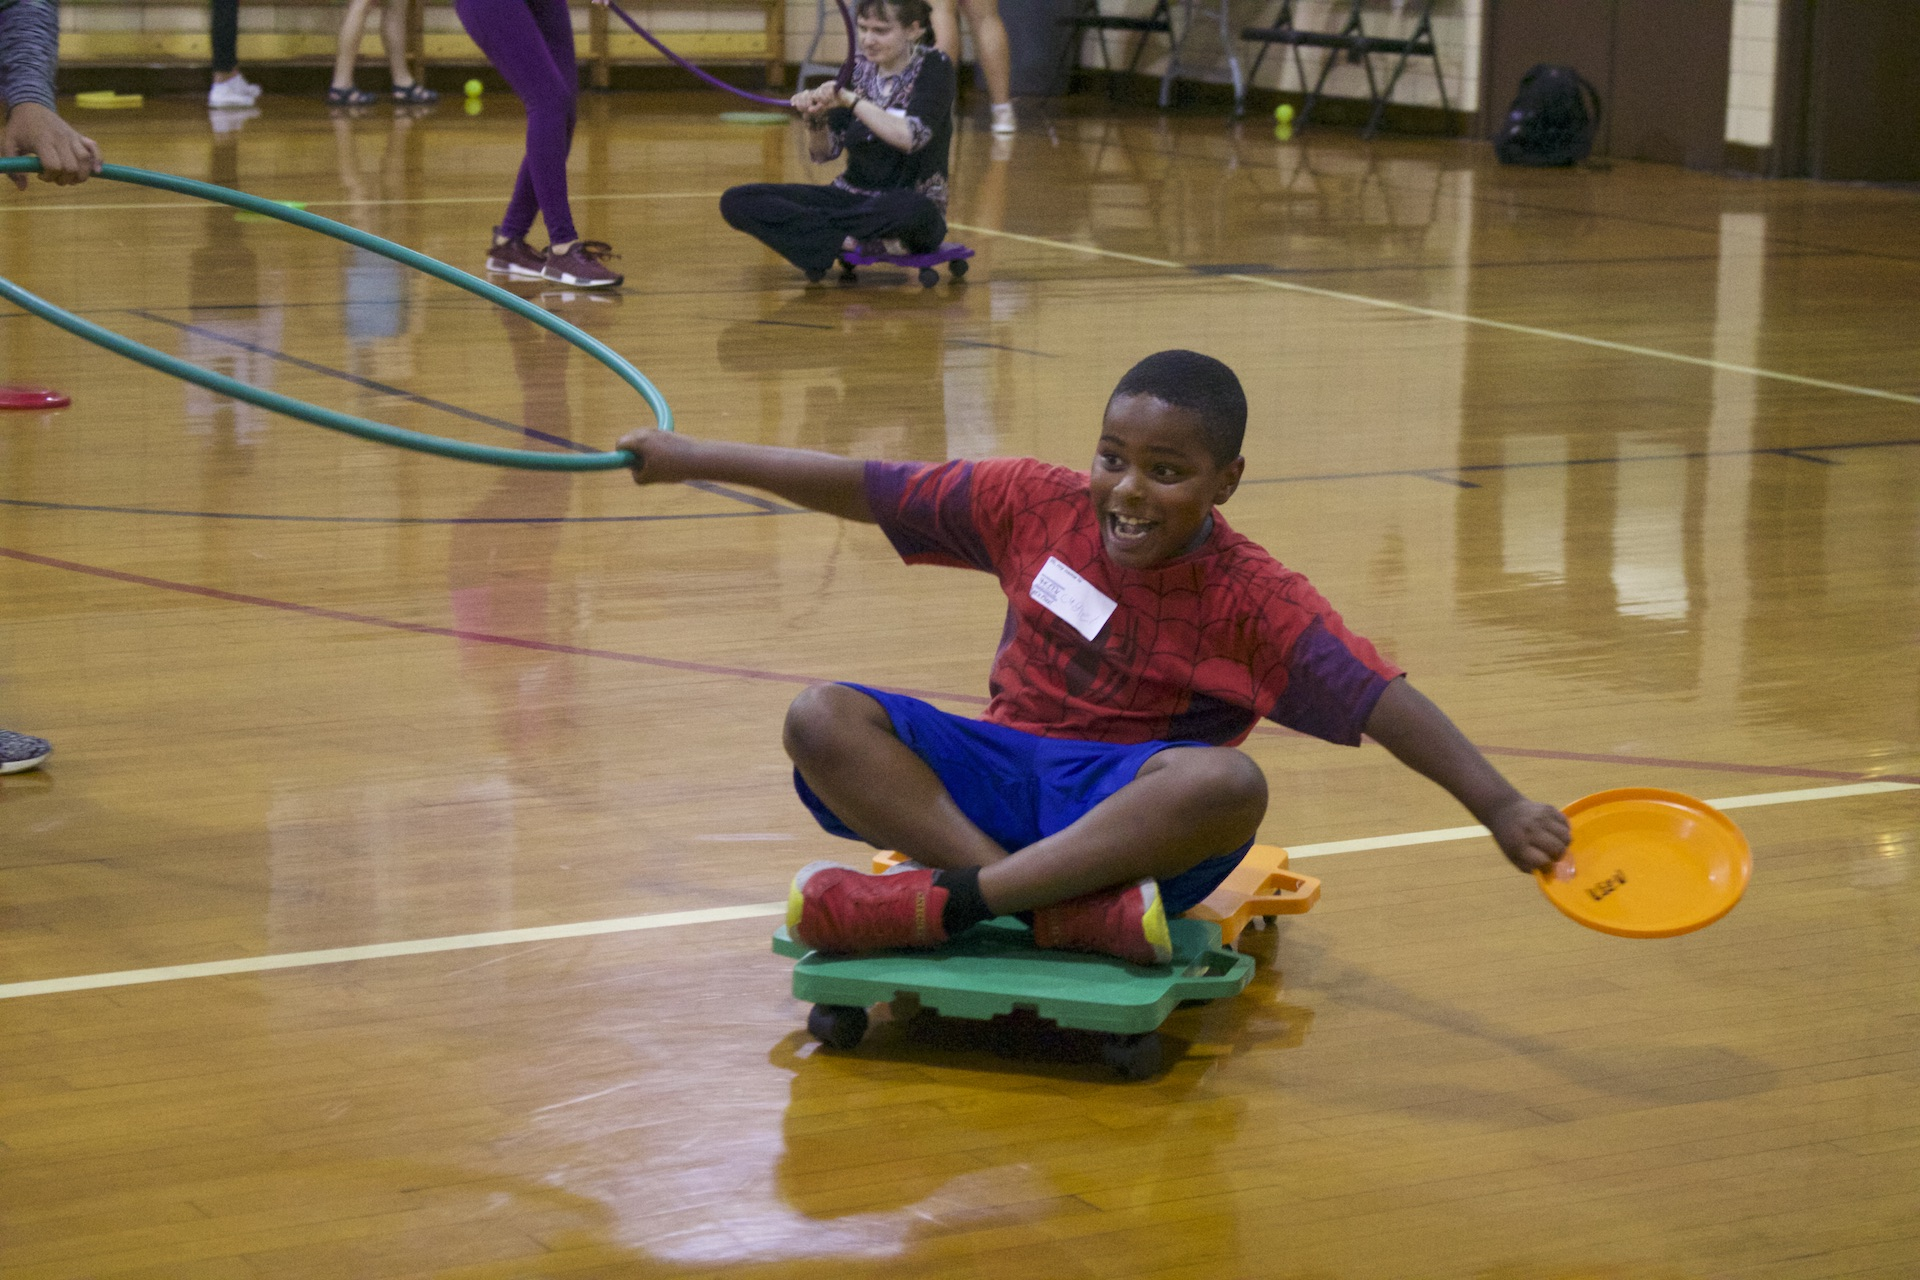 A KEEN athlete enjoys playtime with a volunteer during the KEEN Sports program at Loyola Park.